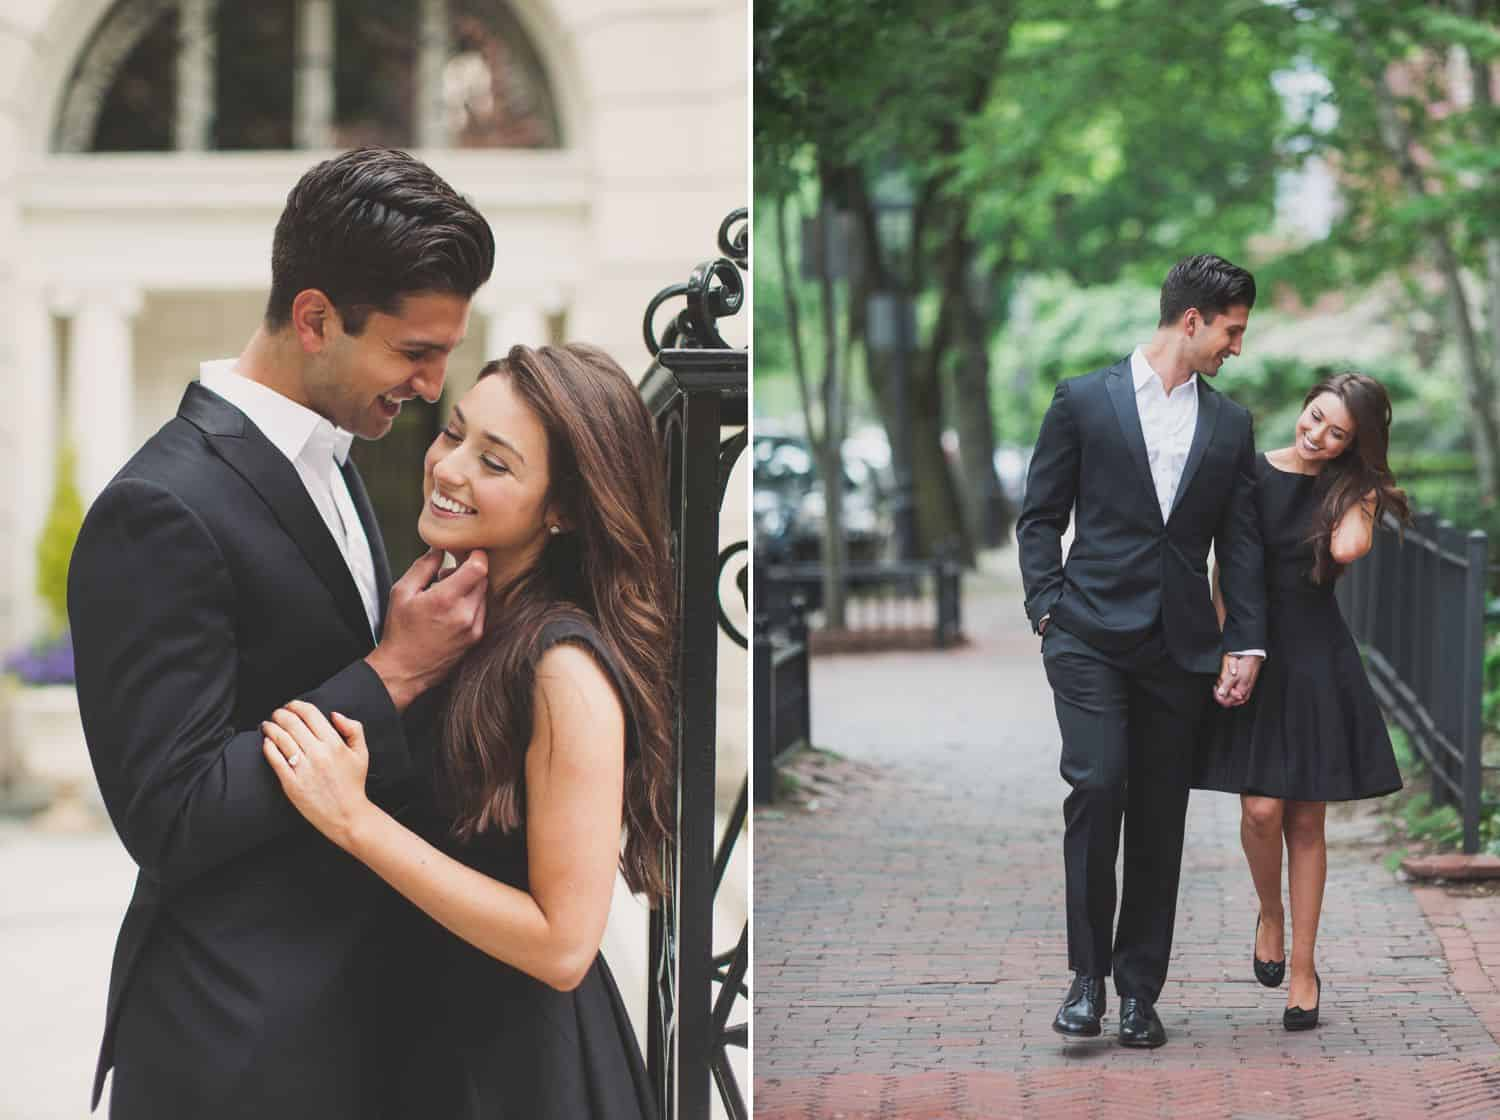 Engaged couple embracing and walking through Central Park. By Harris & Co.